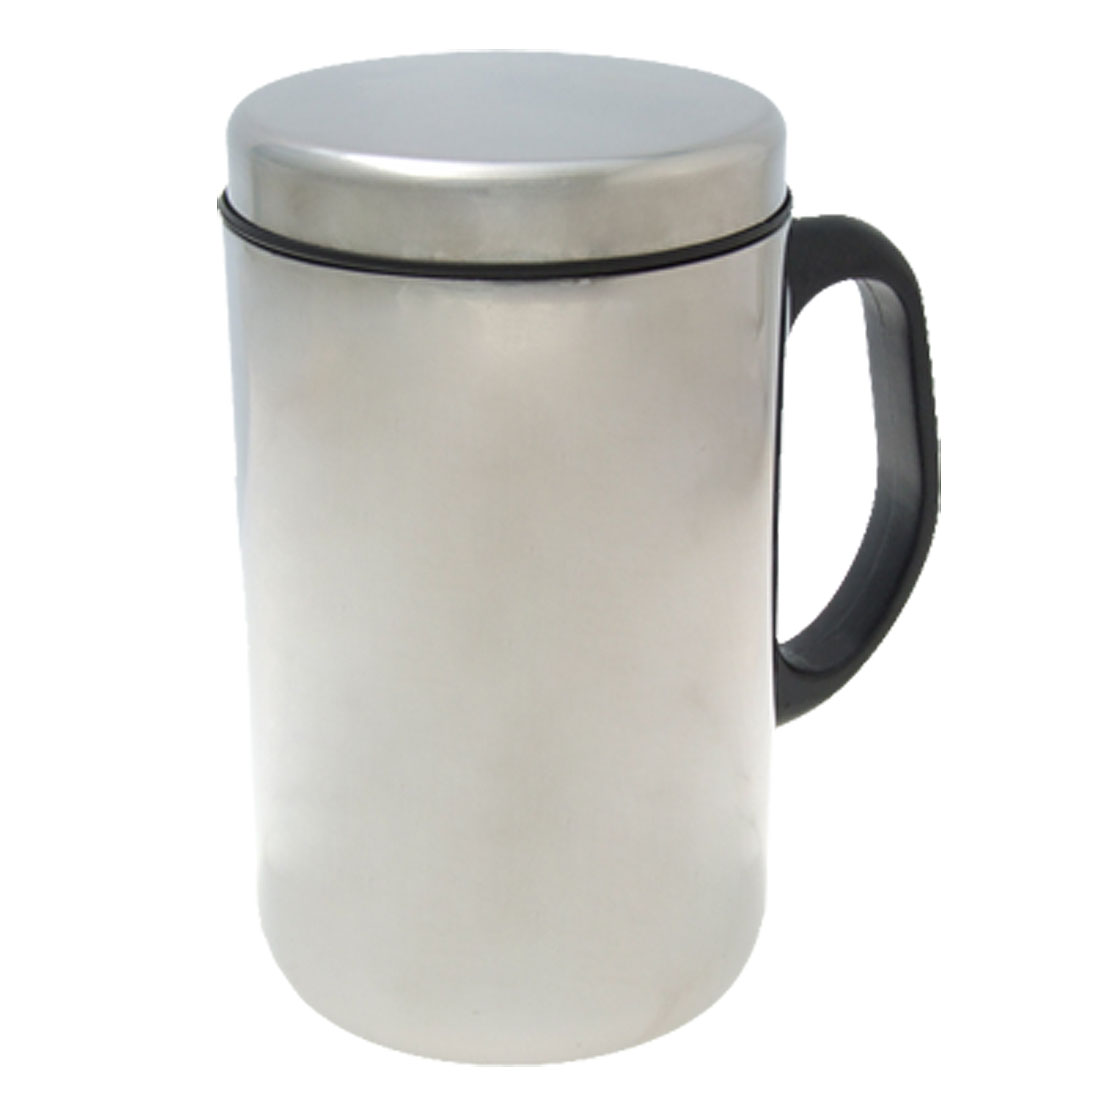 Handy Handle Stainless Steel Double Layer Tea Cup Mug